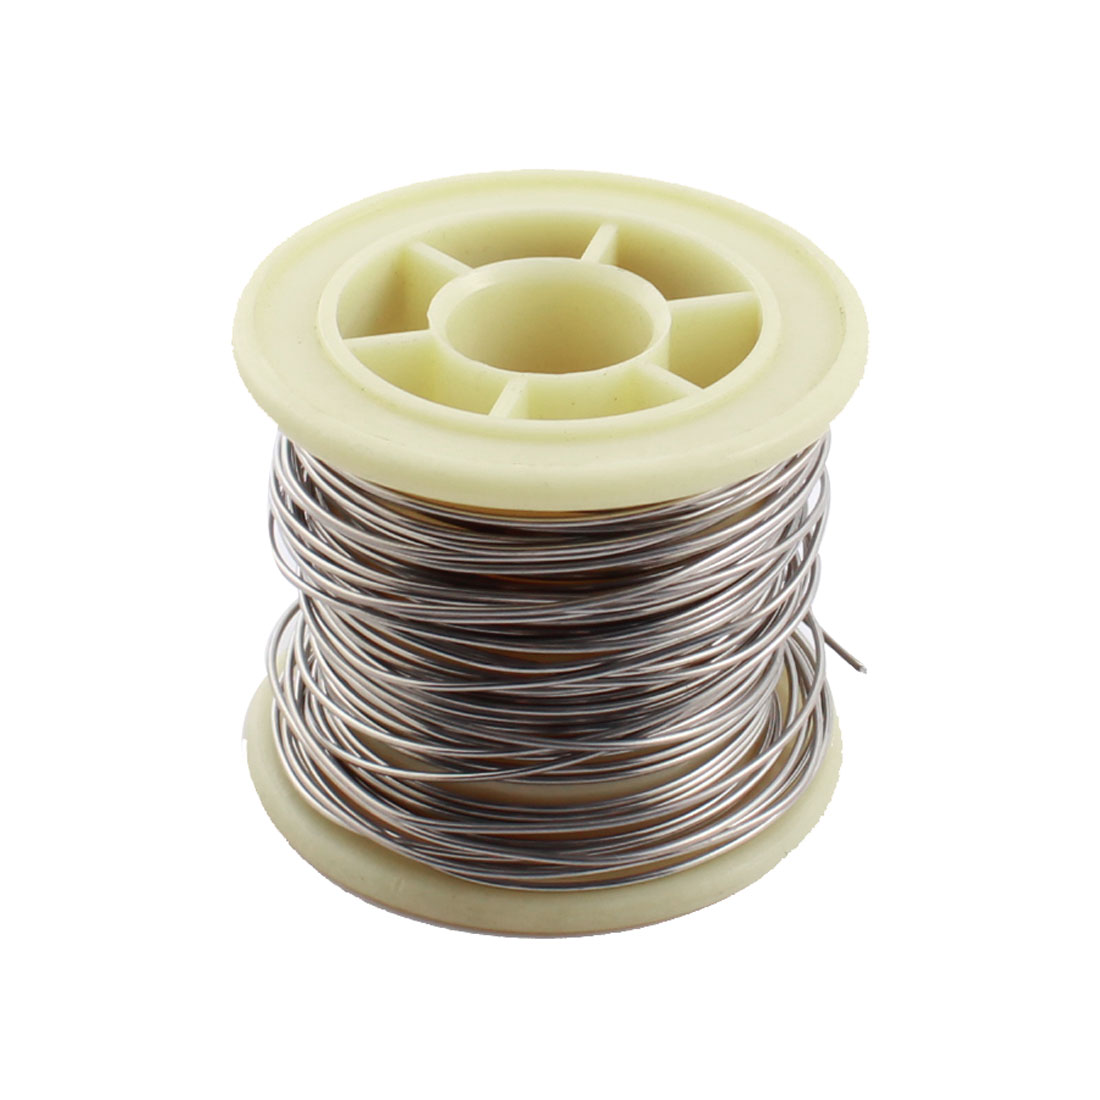 7.5Meter 25ft Long 0.9mm AWG19 Gauge 1.713 Ohm/M Nichrome Resistance Heating Coils Resistor Wire Cable